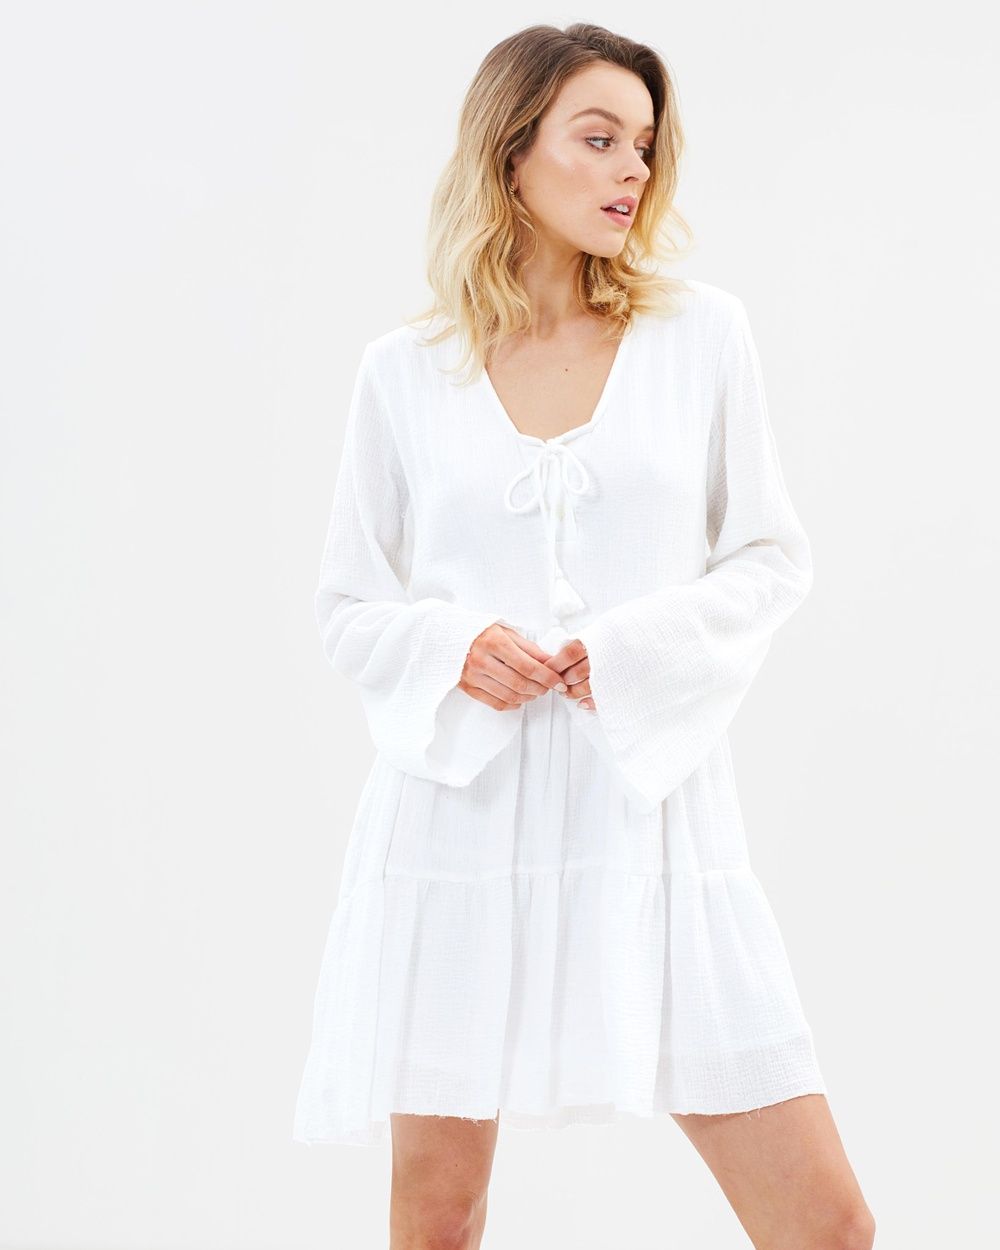 Rue Stiic Tucson Dress Dresses White Tucson Dress